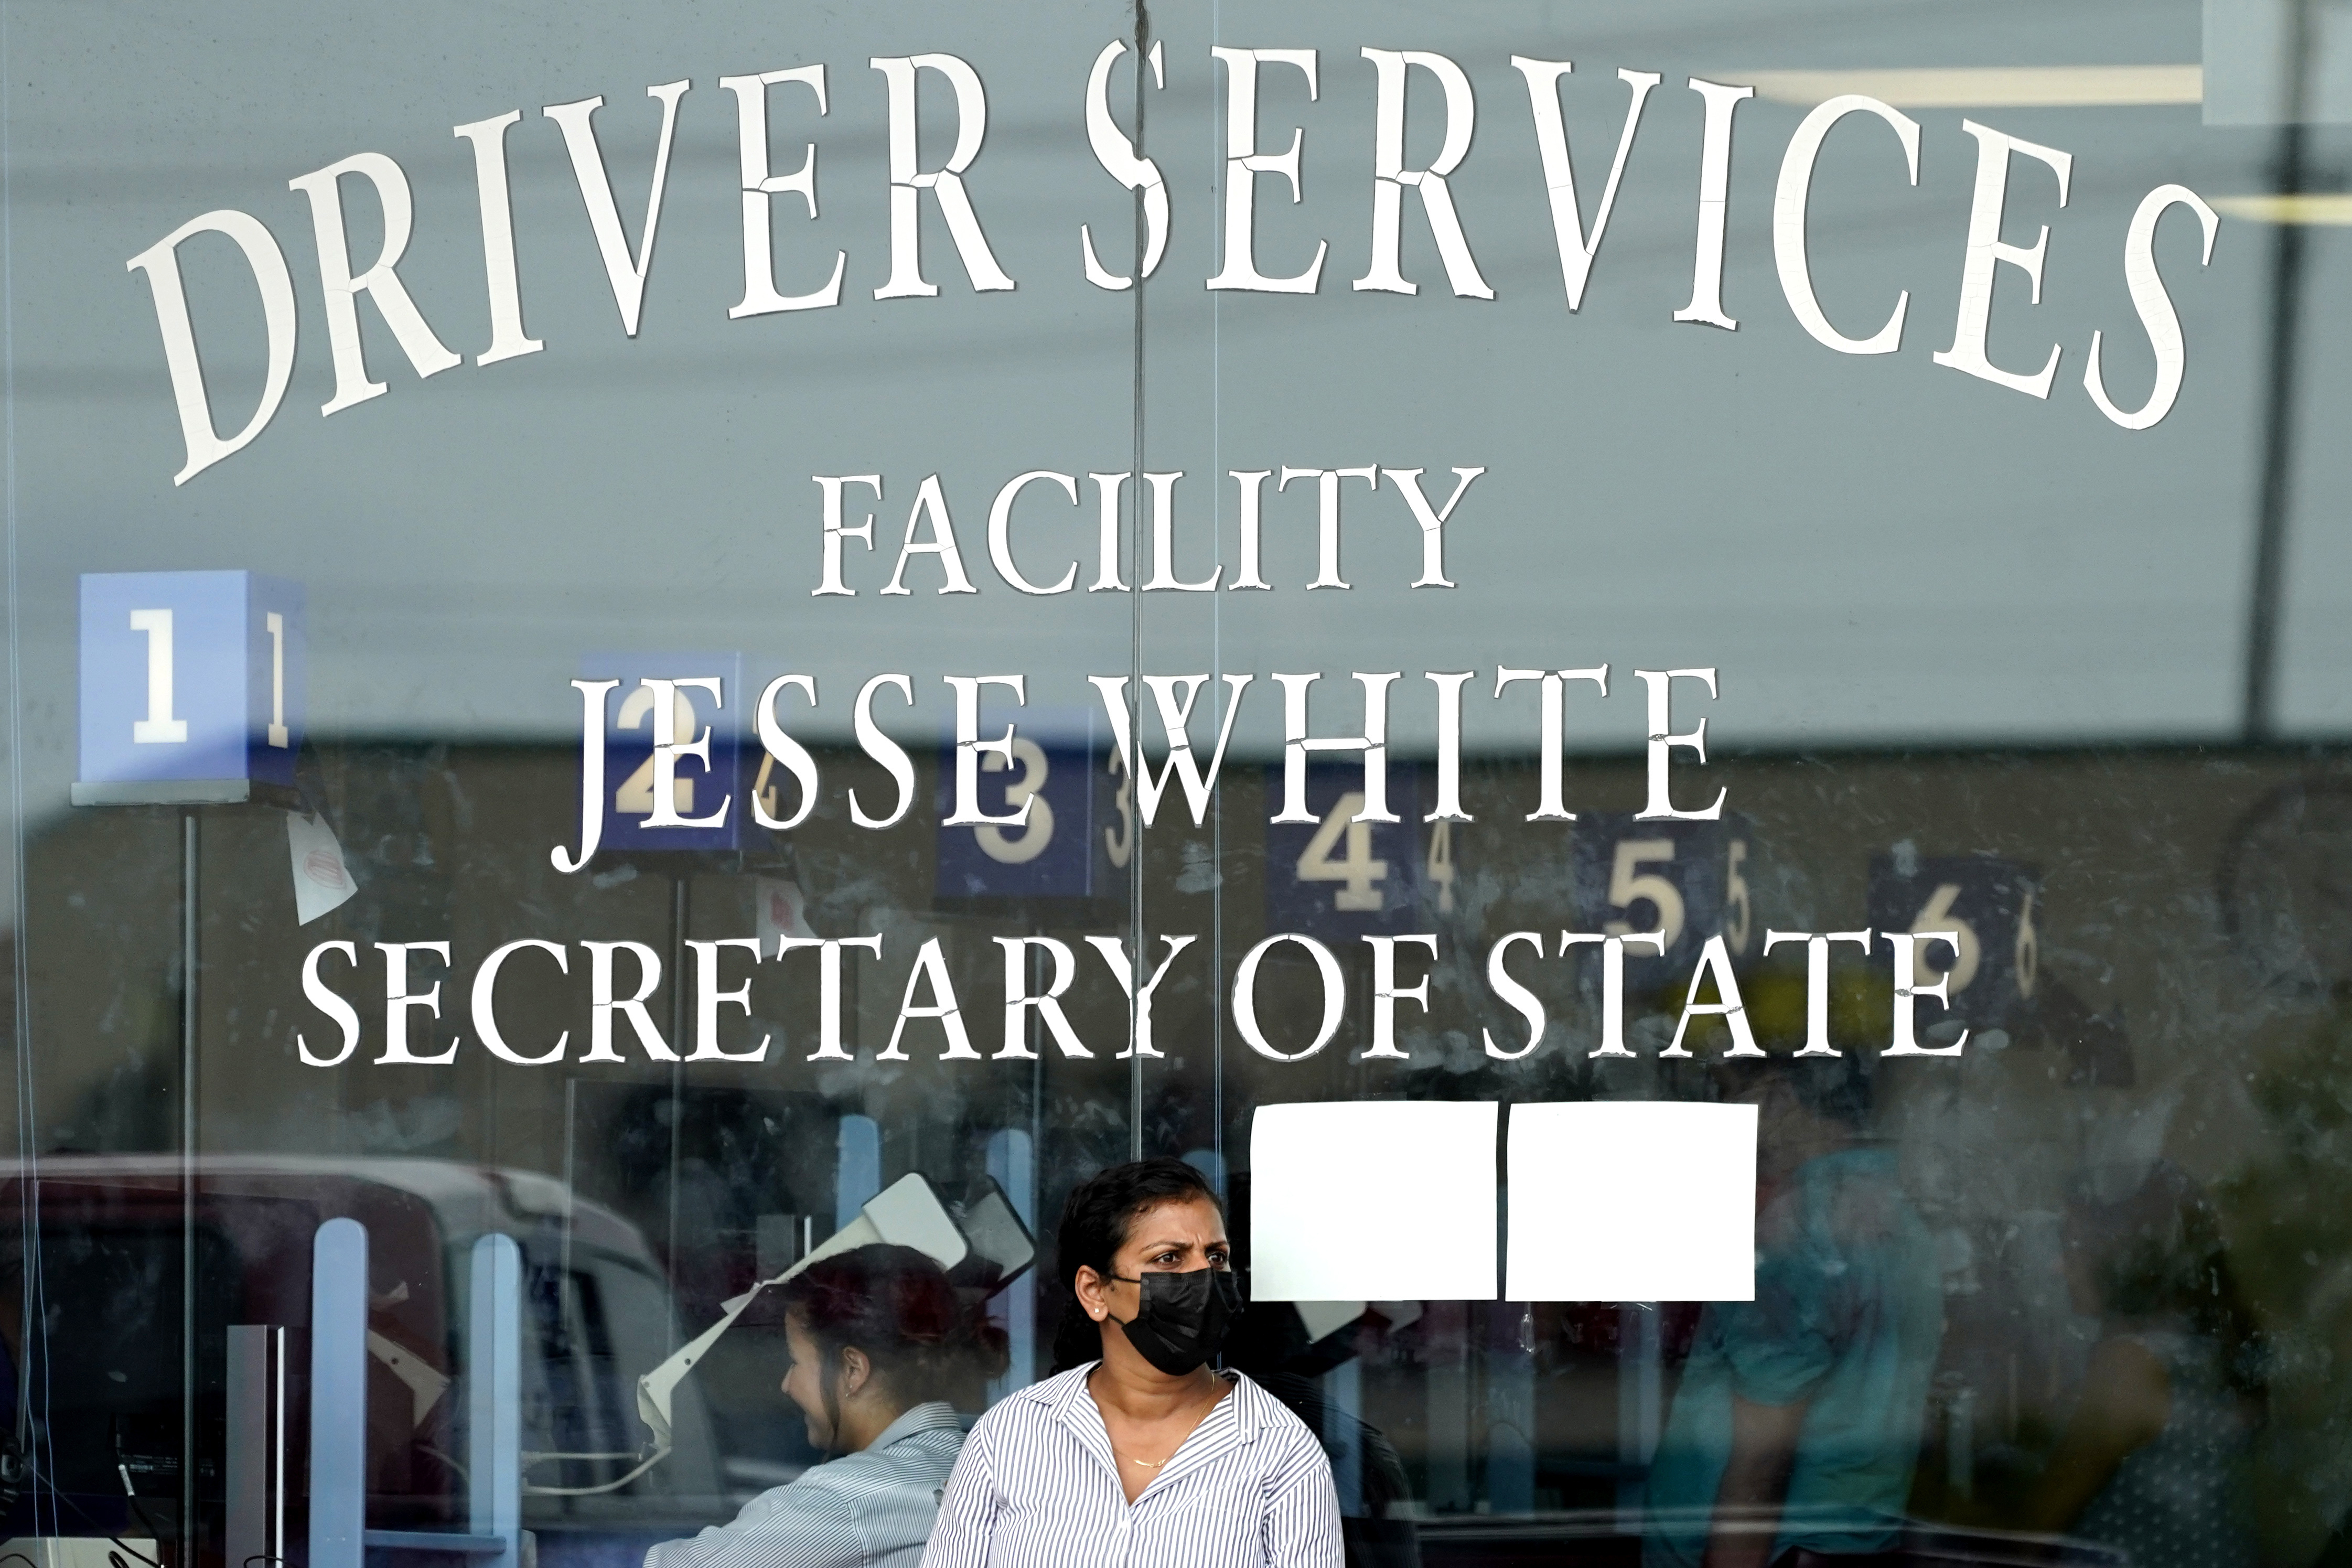 A woman wears mask as she waits to enter the Illinois Department of Motor Vehicles in Deerfield earlier this month. Masks will be required at all buildings managed by the Illinois Secretary of State starting Aug. 2.